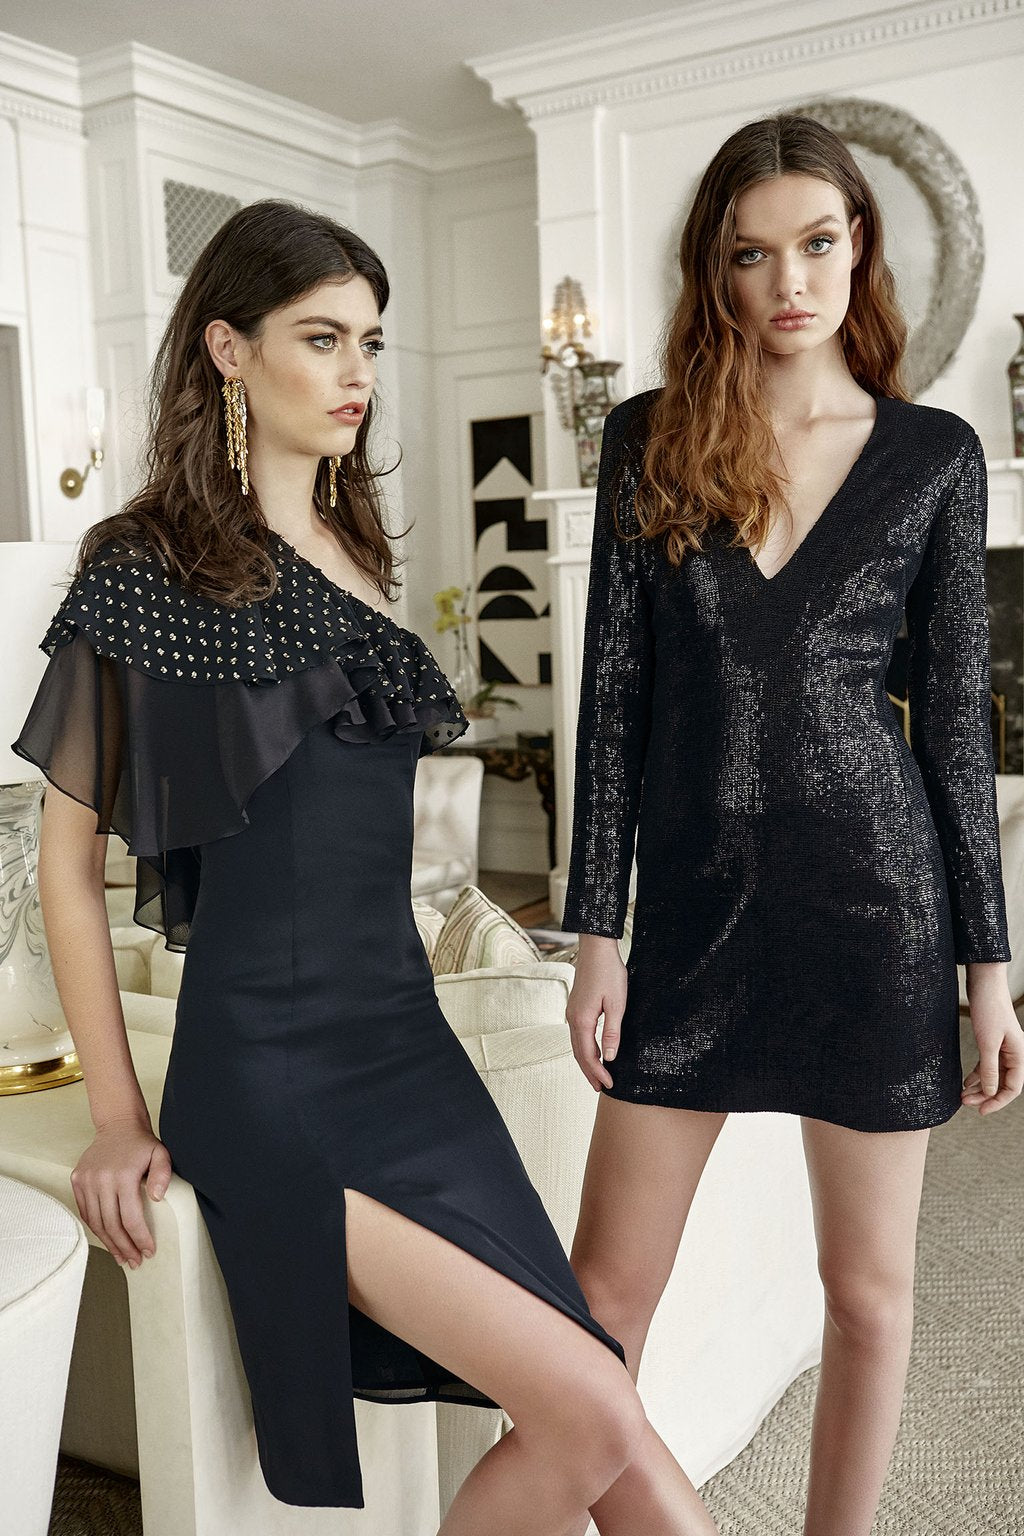 Cynthia One-Shoulder Dress and Hailey Deep-V Dress